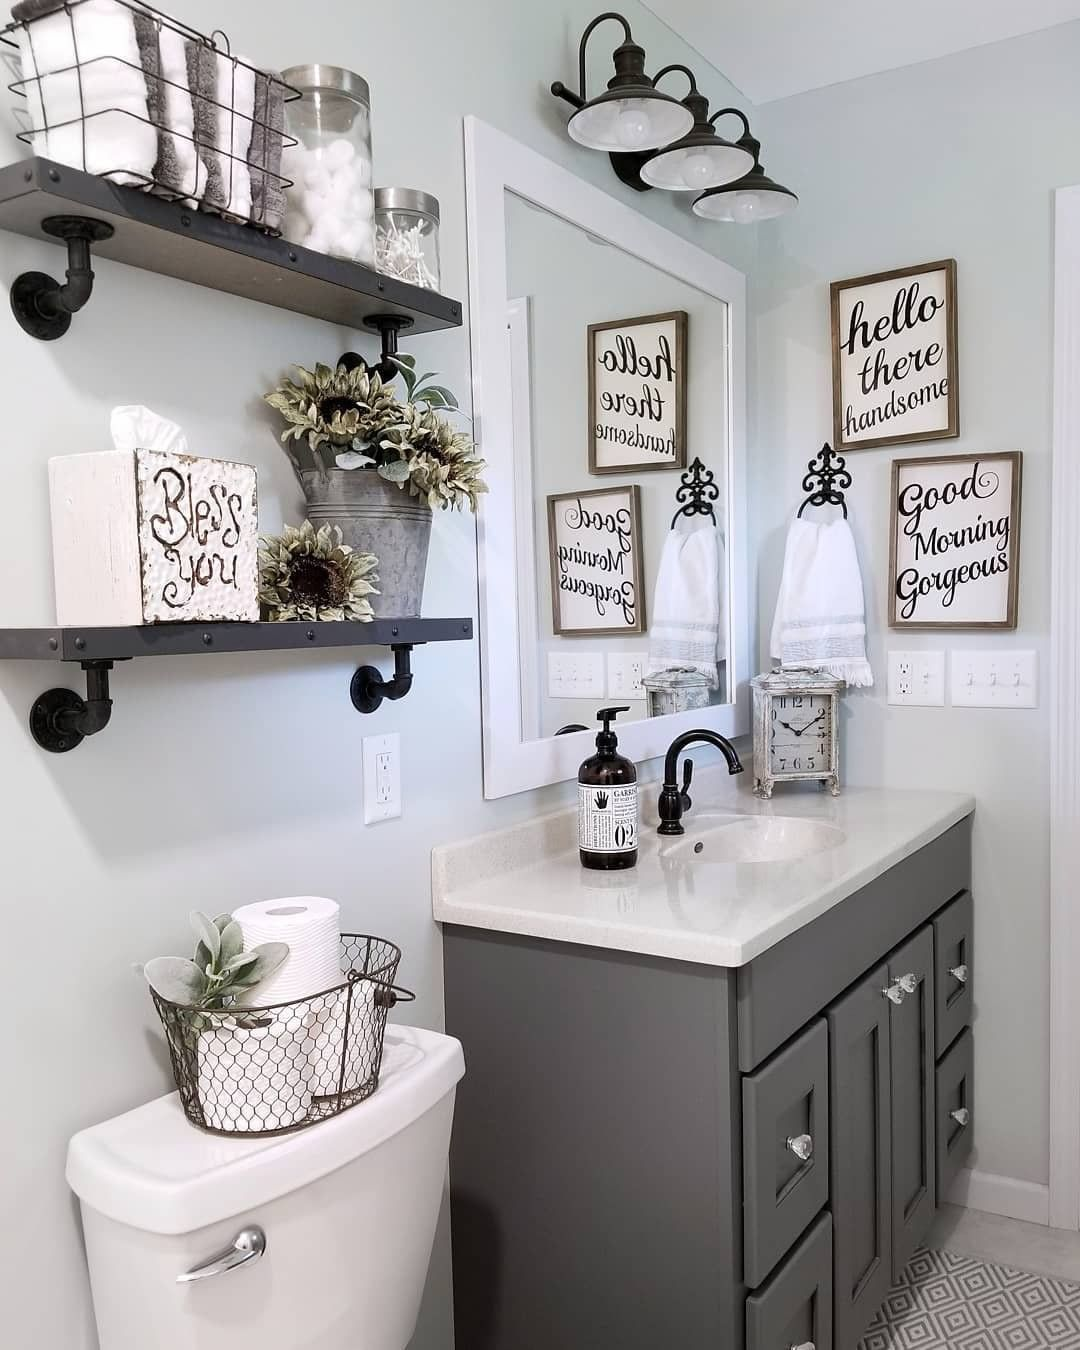 Now This Is Bathroom Decor Done Right The Neutral Color Scheme Flows So Well In Blessed Ranch S Bathroom Small Bathroom Decor Restroom Decor Bathroom Decor